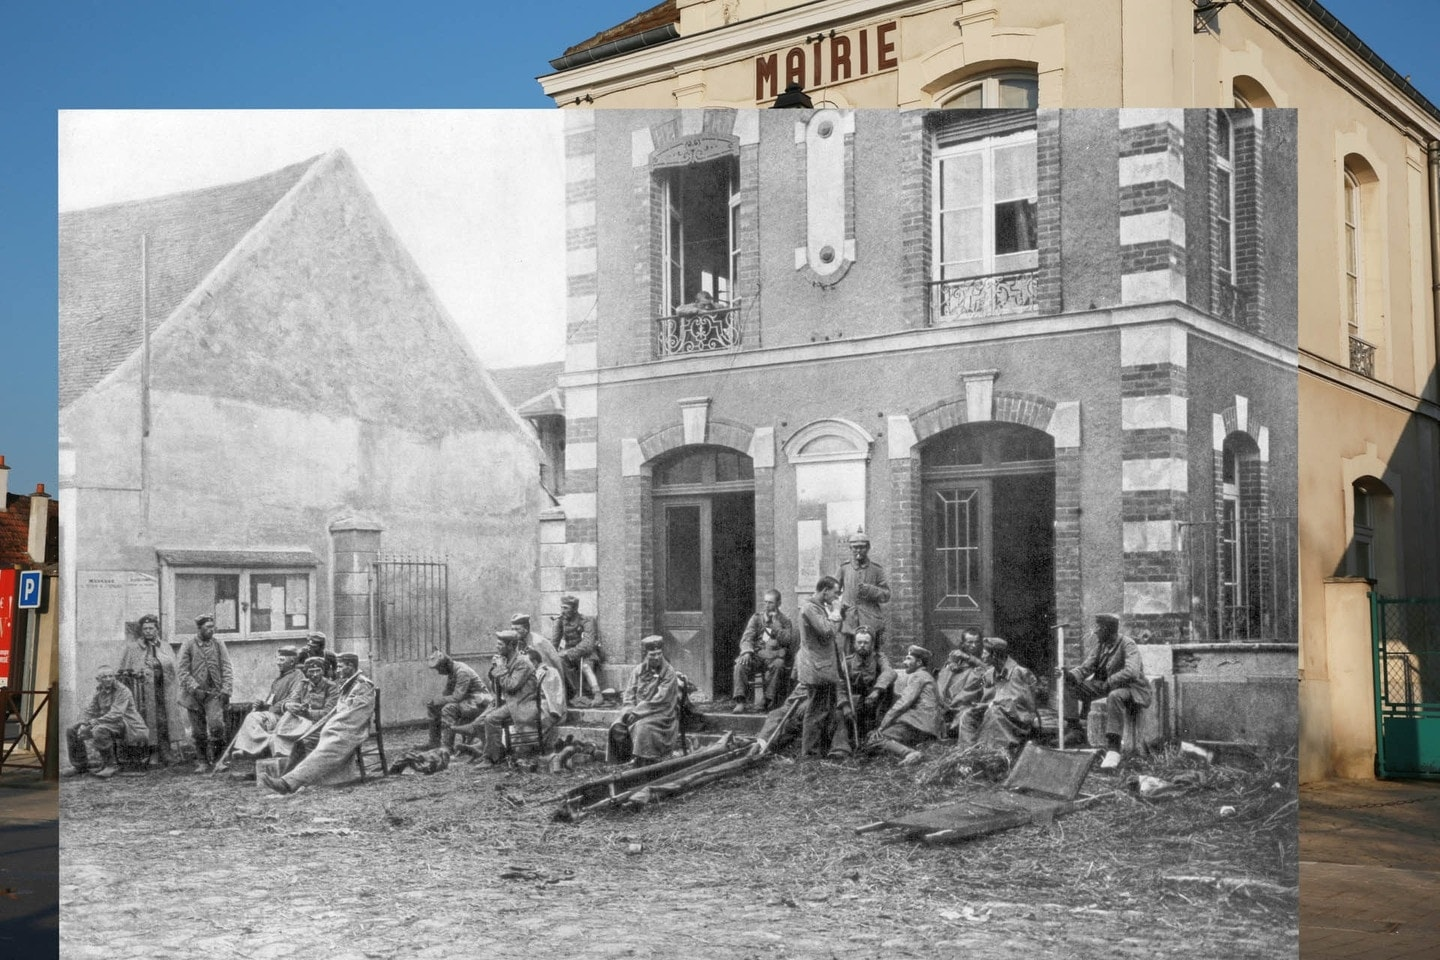 """""""German soldiers taking a rest during the First Battle of the Marne on the steps of the Vareddes Town Hall, France, 1914"""""""